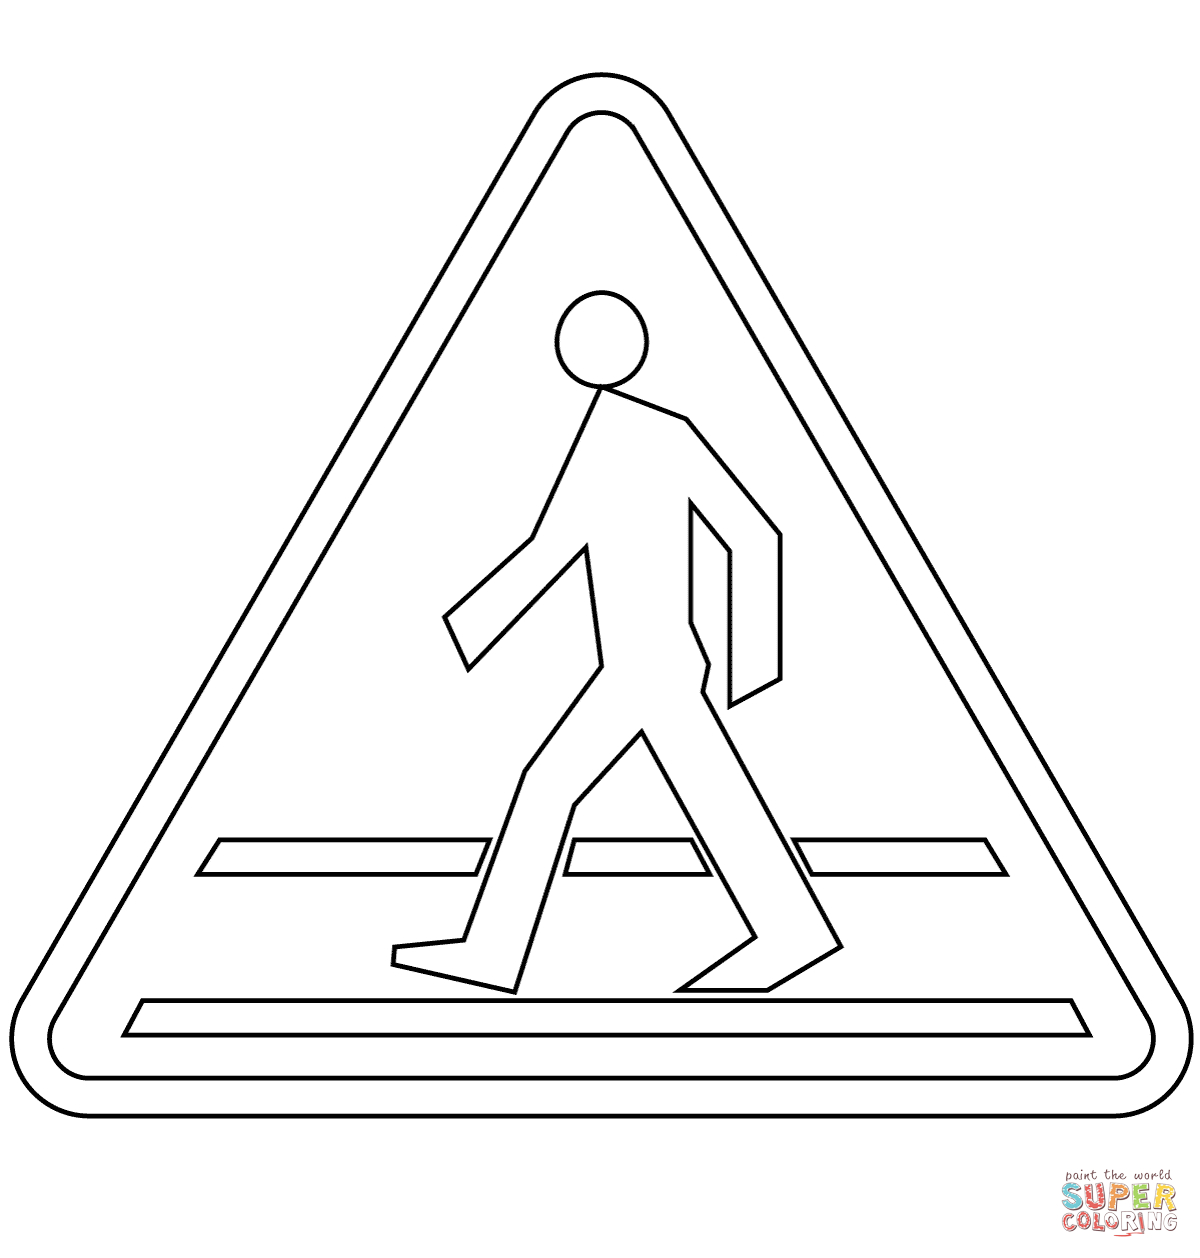 caution sign coloring page free safety signs coloring pages download free clip art sign page coloring caution